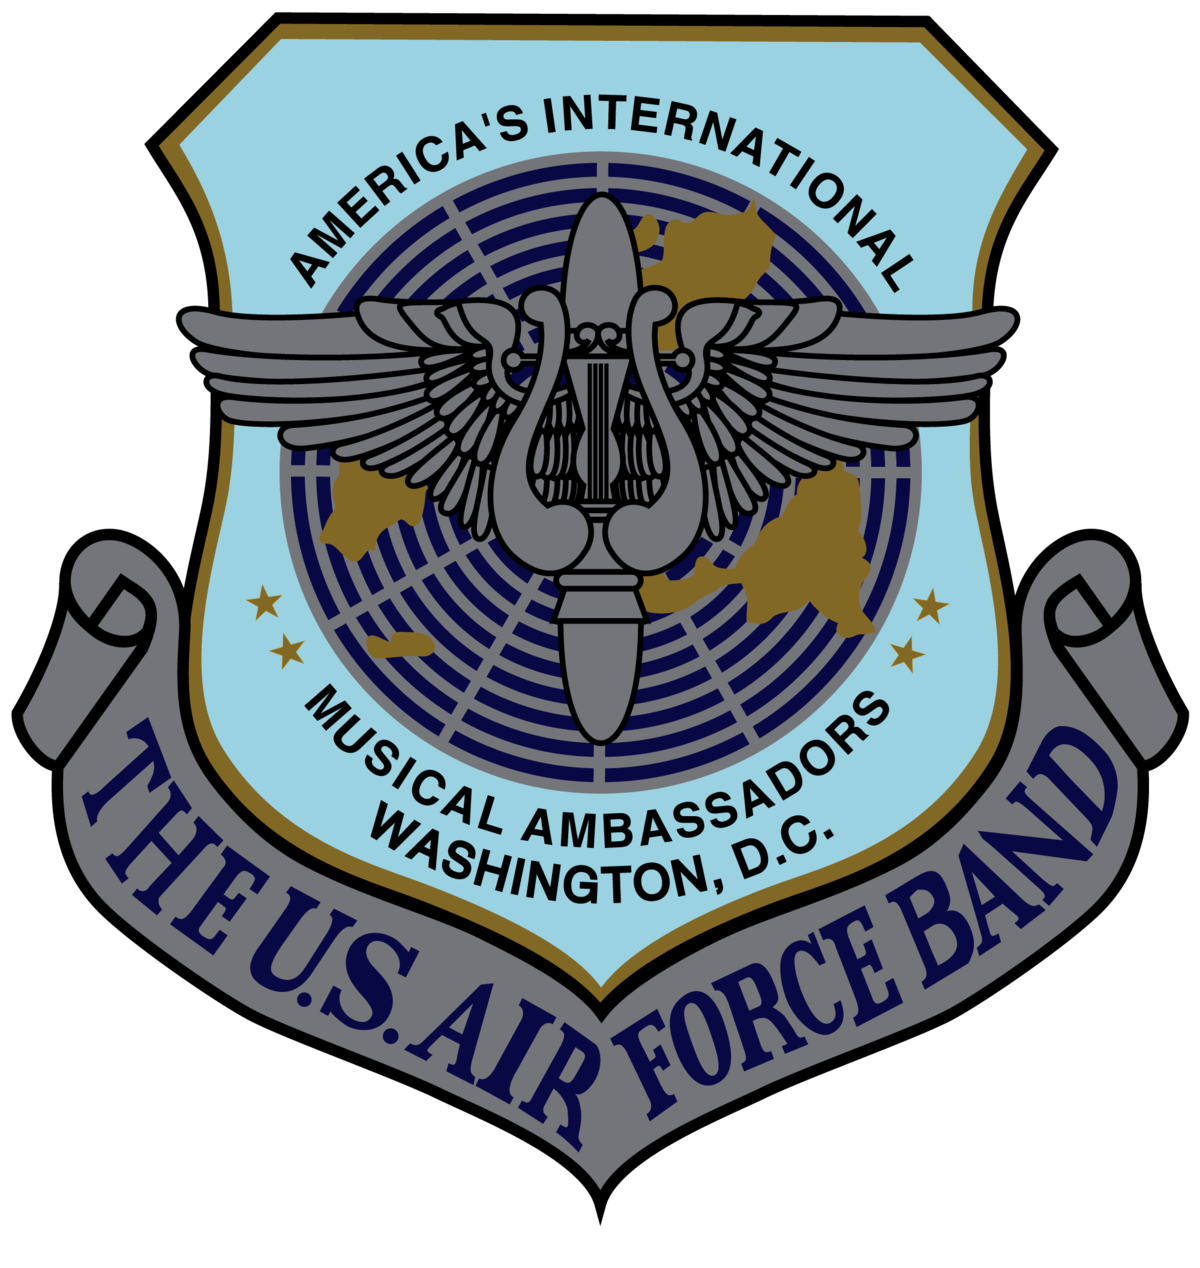 Airforce hat clipart banner royalty free United States Air Force Band - Wikipedia banner royalty free